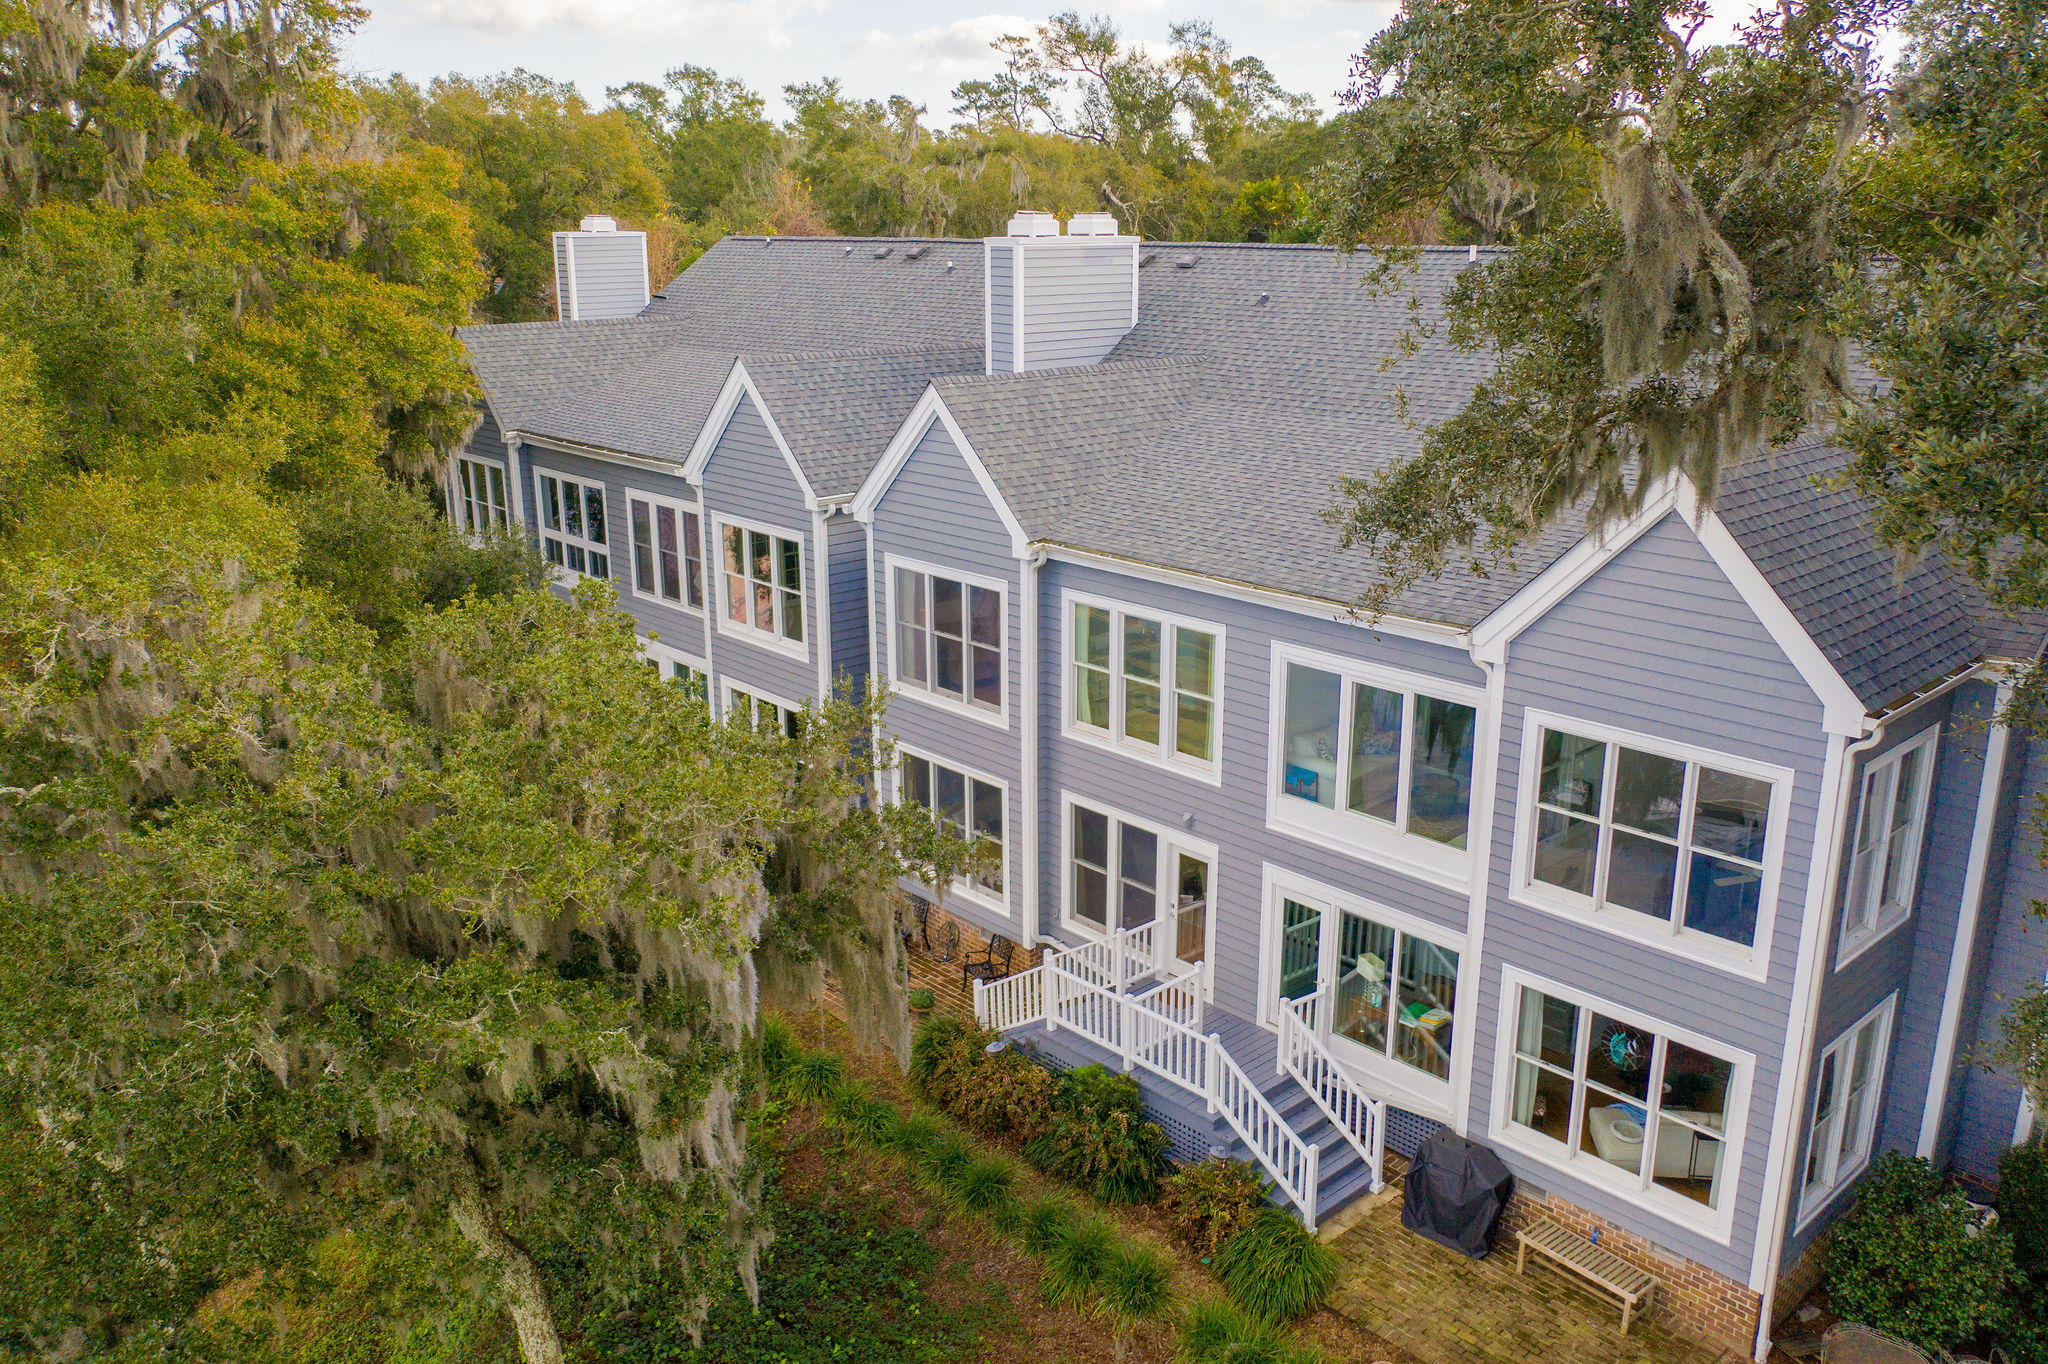 Waterfront Plantation Homes For Sale - 110 Waterfront Plantation, Charleston, SC - 67